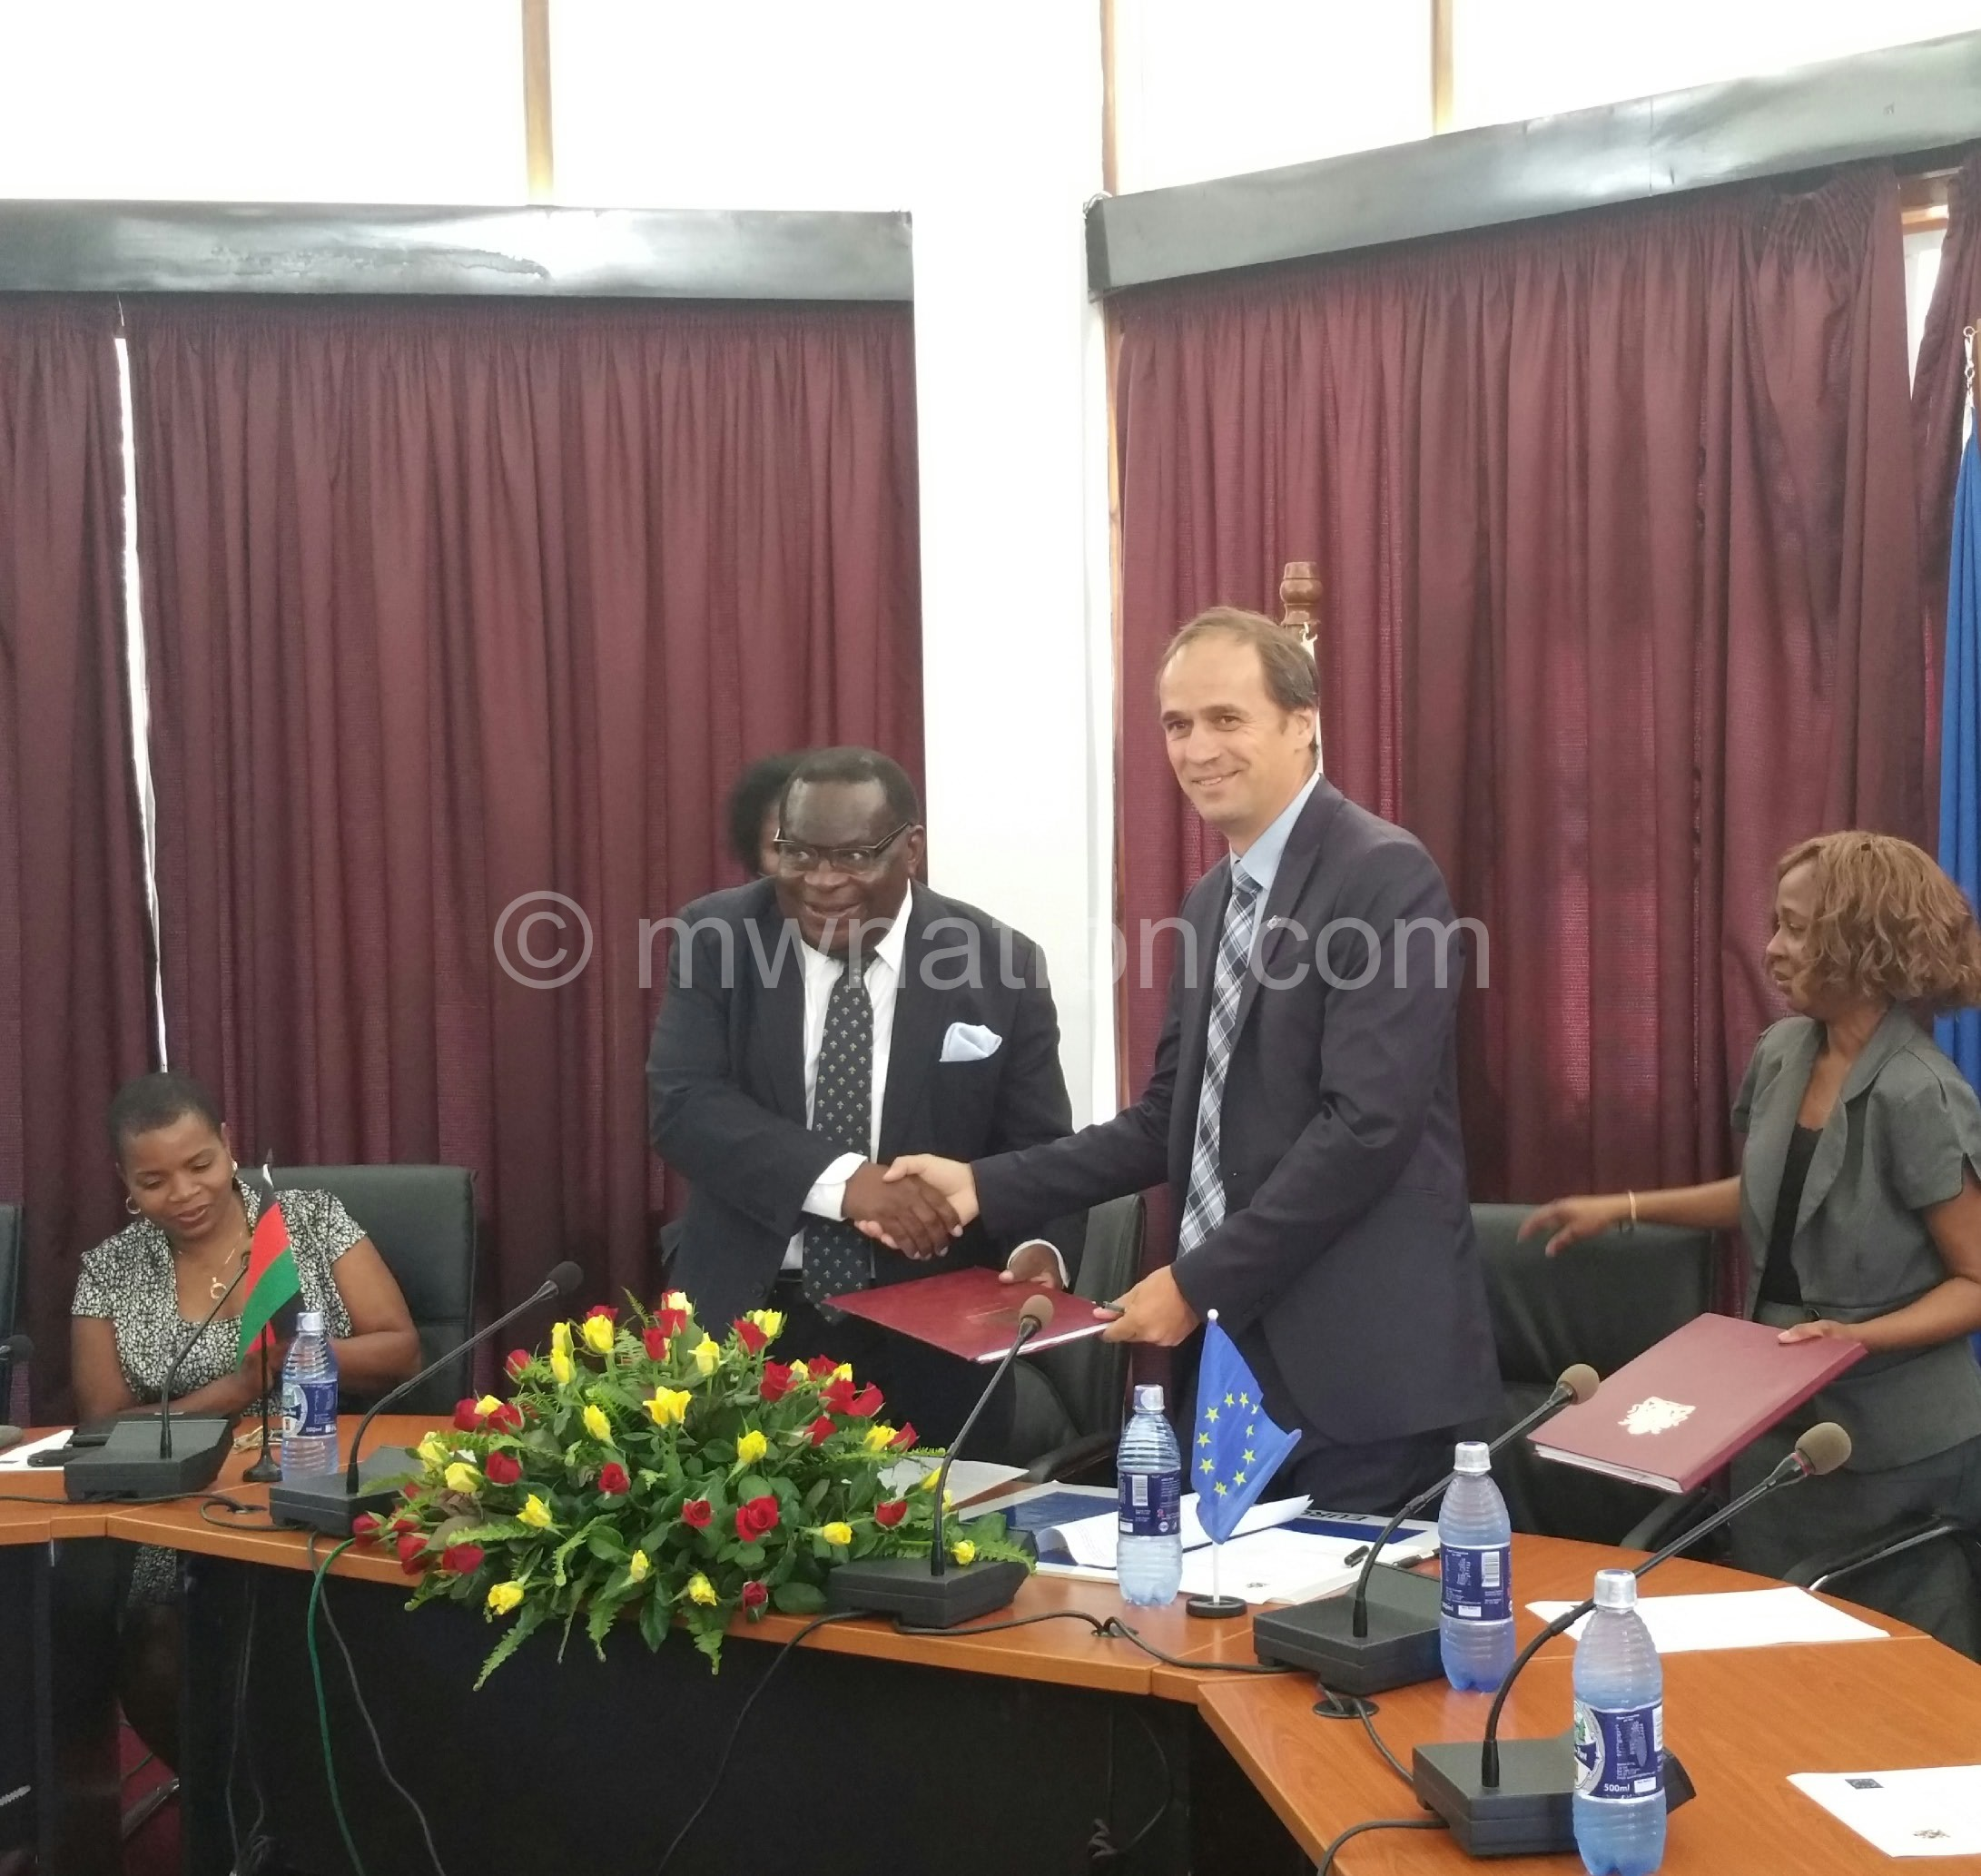 EU head of delegation to Malawi Marchel Gerrmann (R) and Minister of Finance Goodall Gondwe (L) exchanging signed agreements